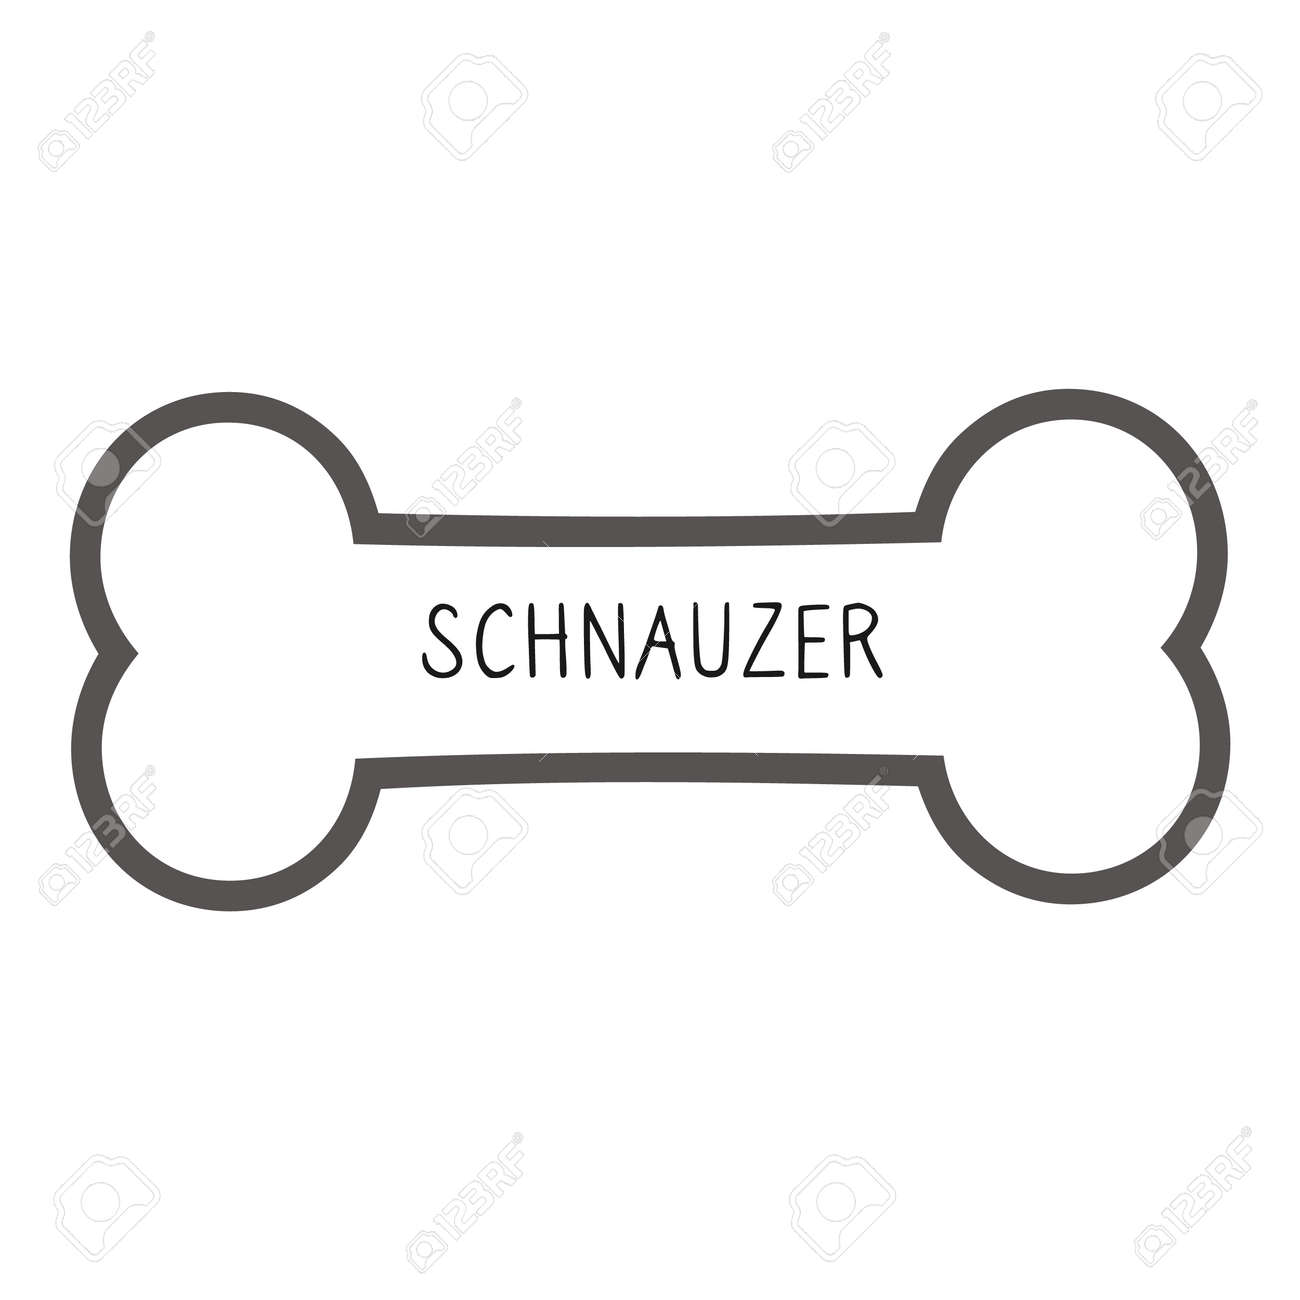 Cute cartoon Schnauzer text on collar dog tag vector clipart. Purebred doggy identification medal for pet id. Domestic dog for pet pooch. - 169440553